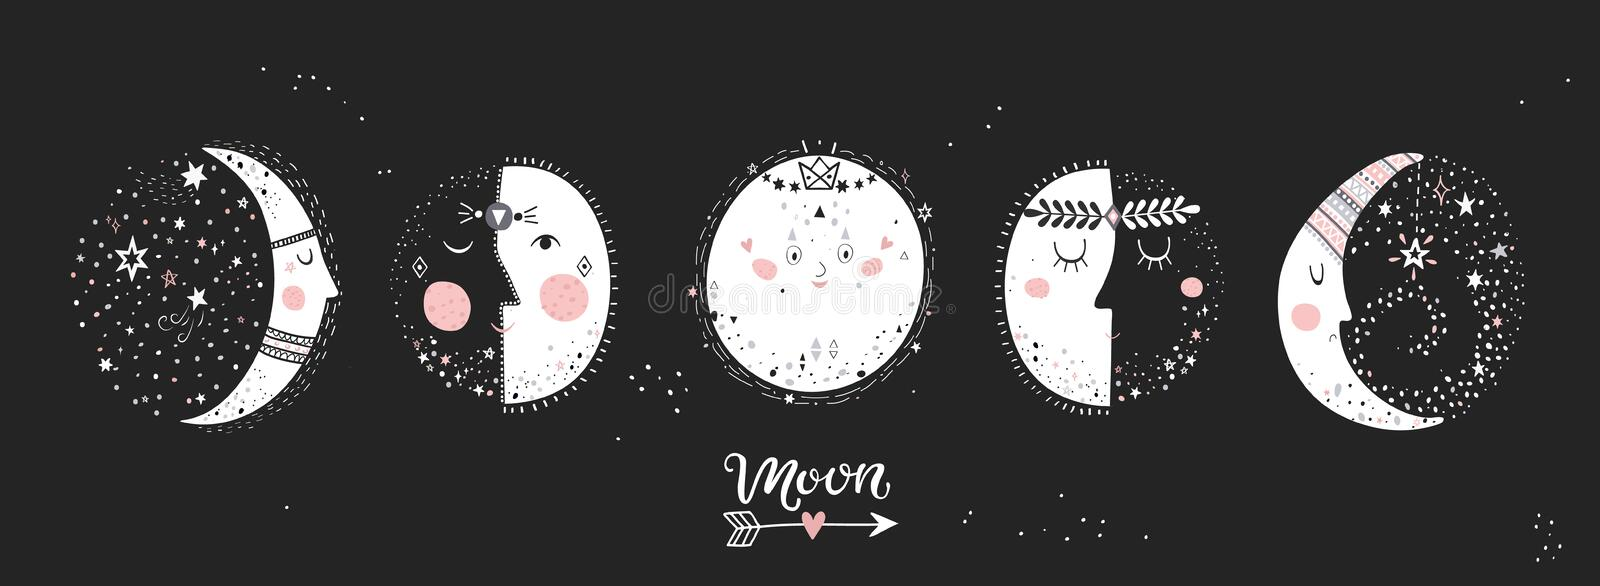 5 stages of the moon. royalty free illustration